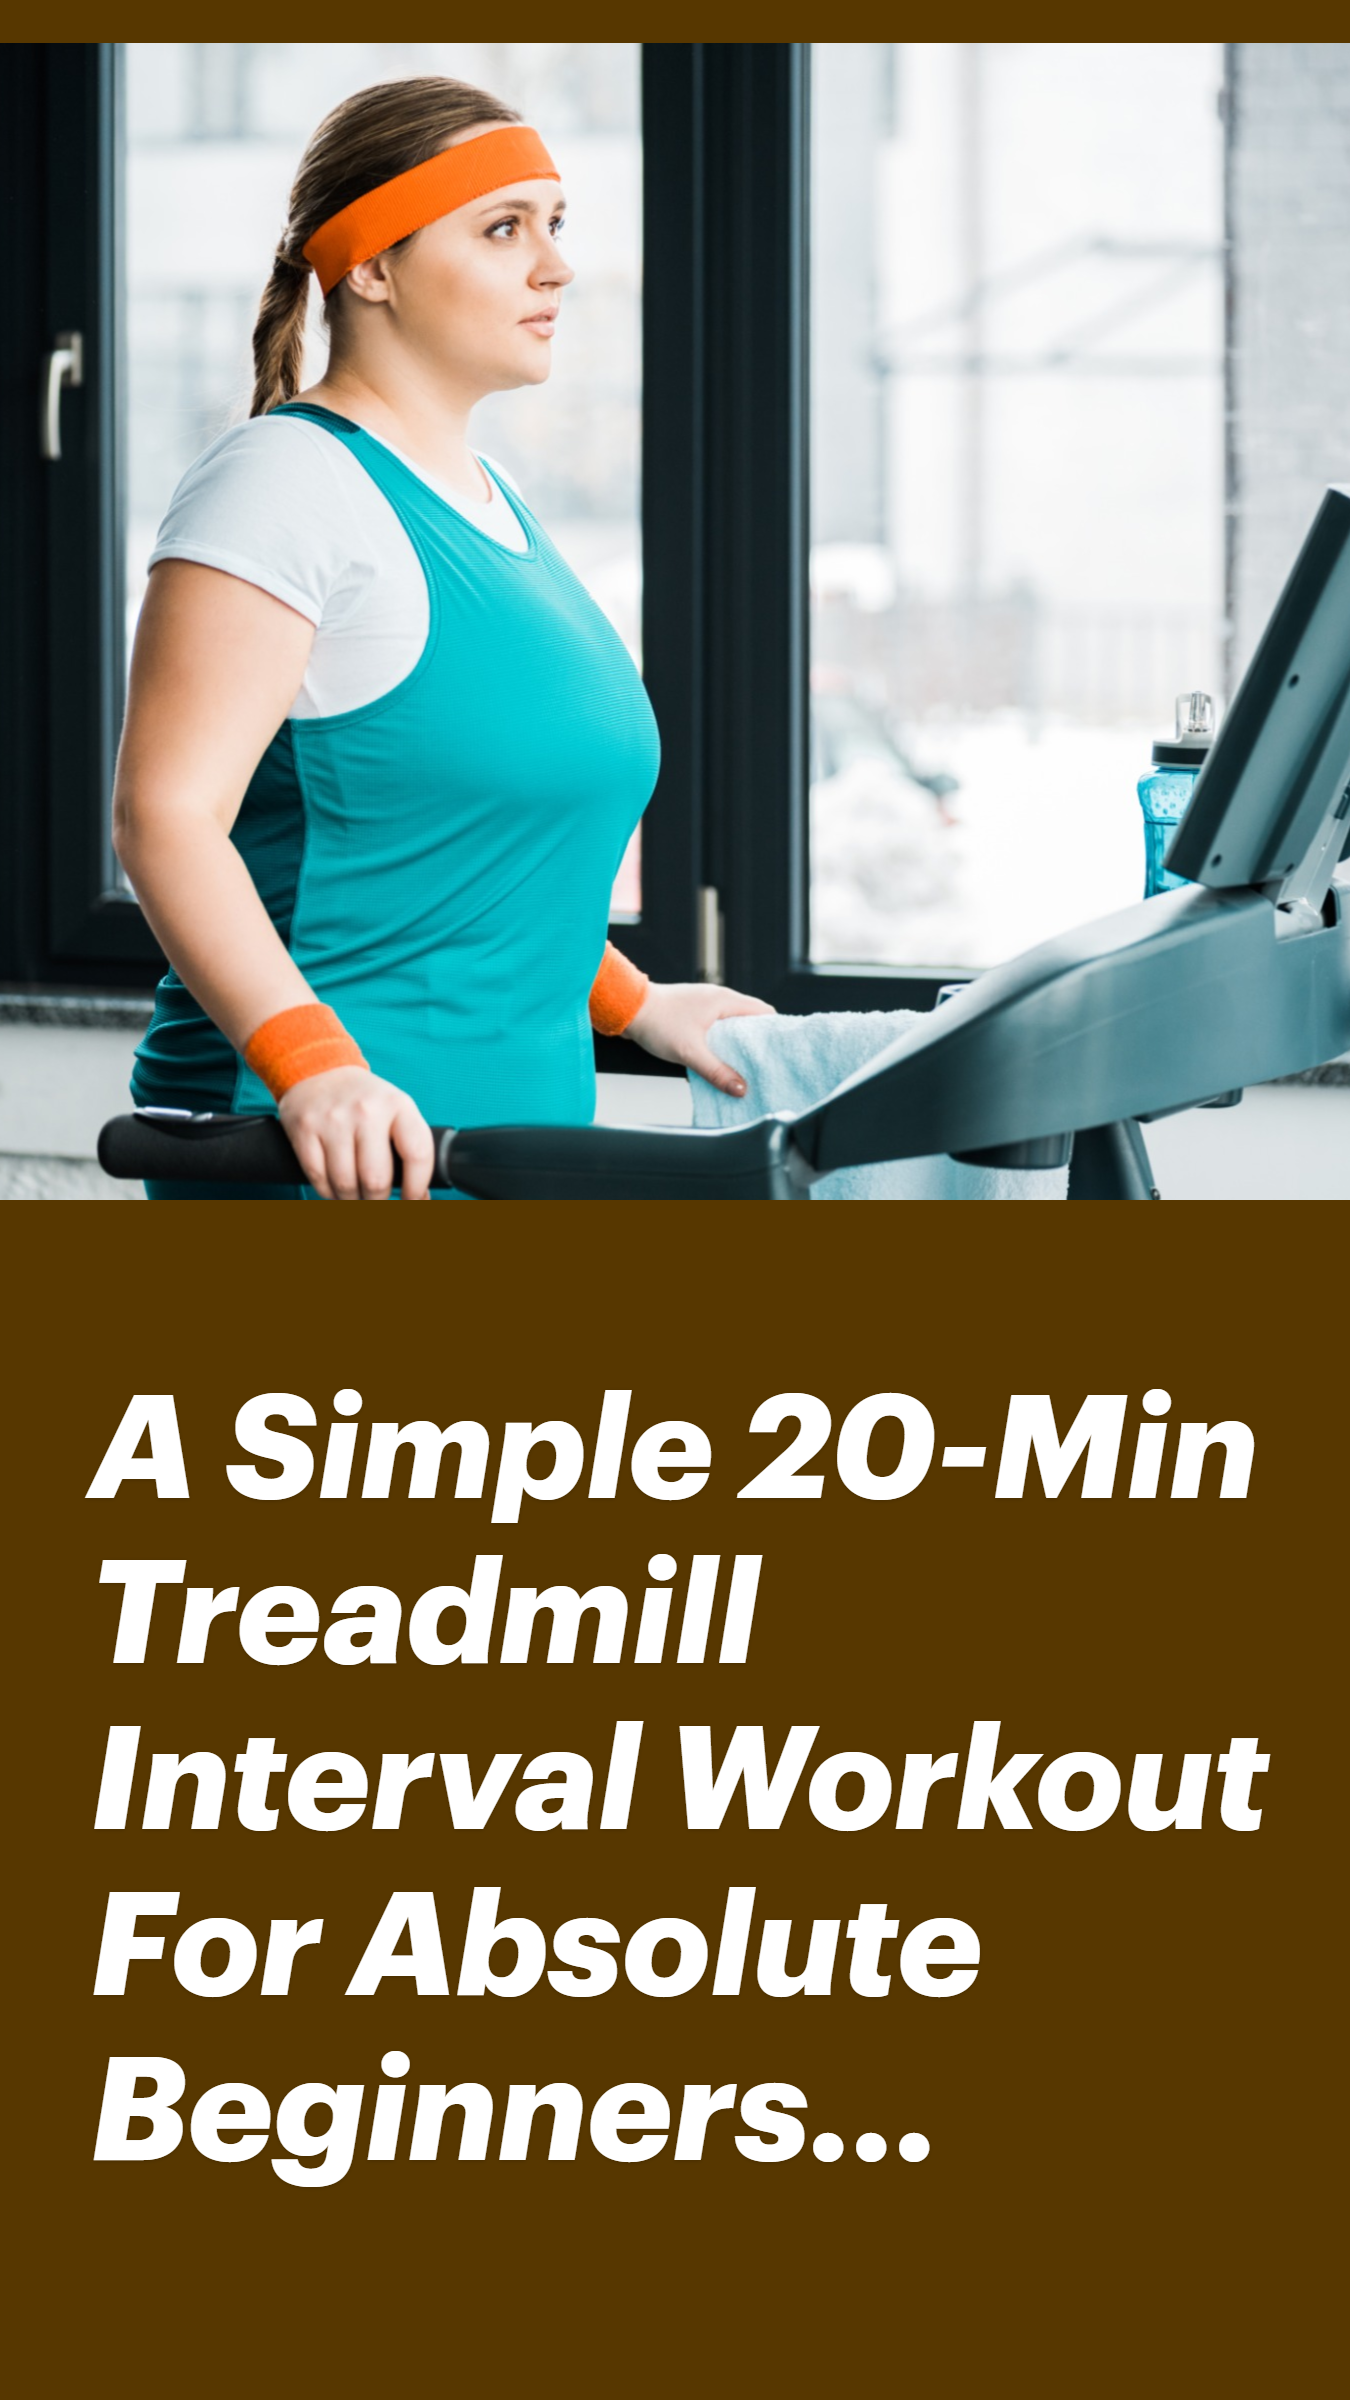 A Simple 20-Min Treadmill Interval Workout For Absolute Beginners...